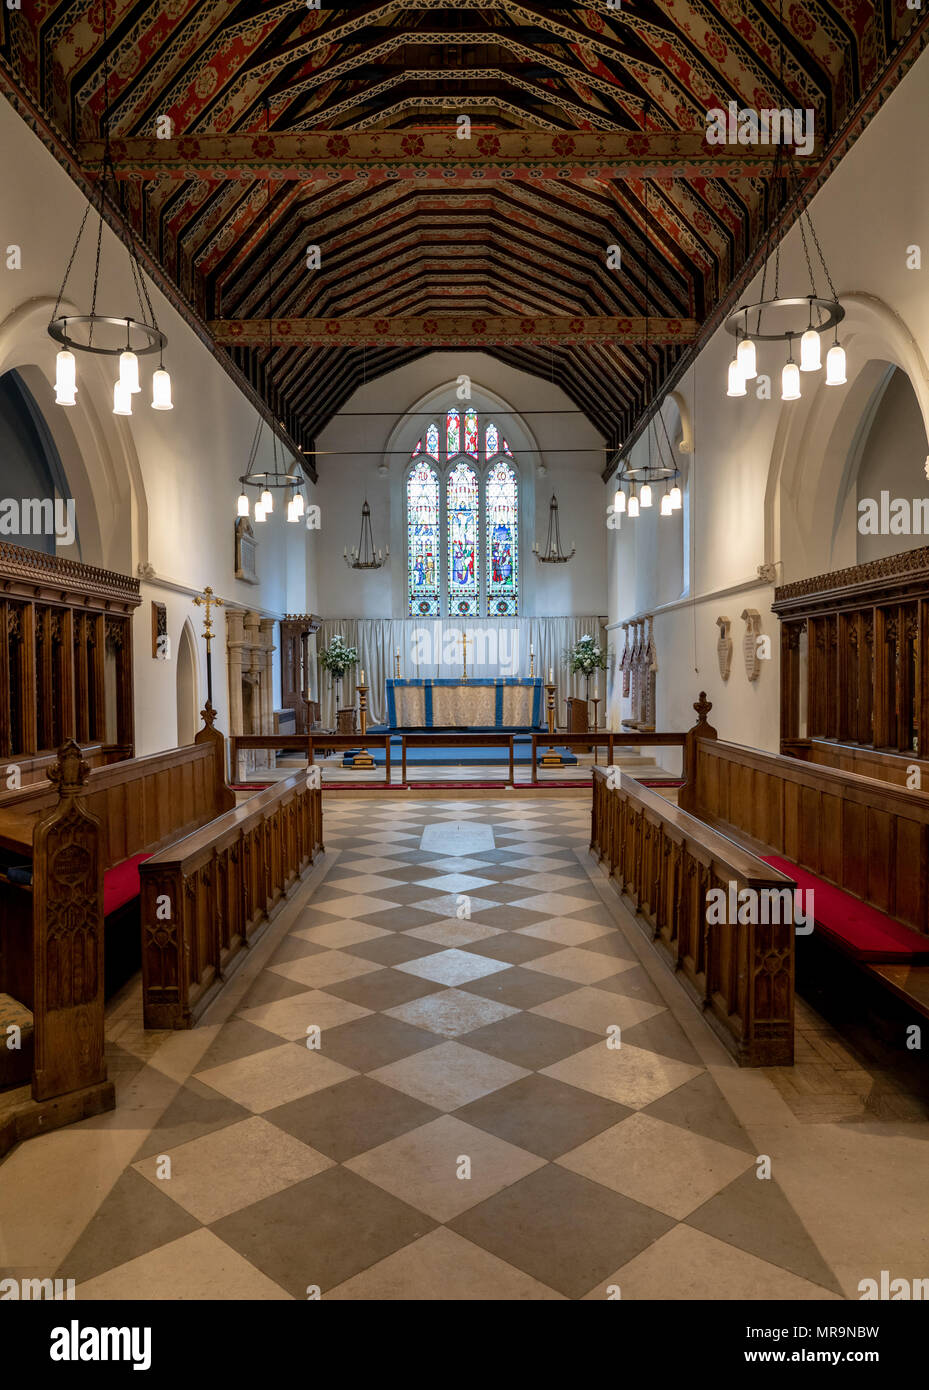 Interior of St Mary the Virgin church in village of Hambleden - Stock Image